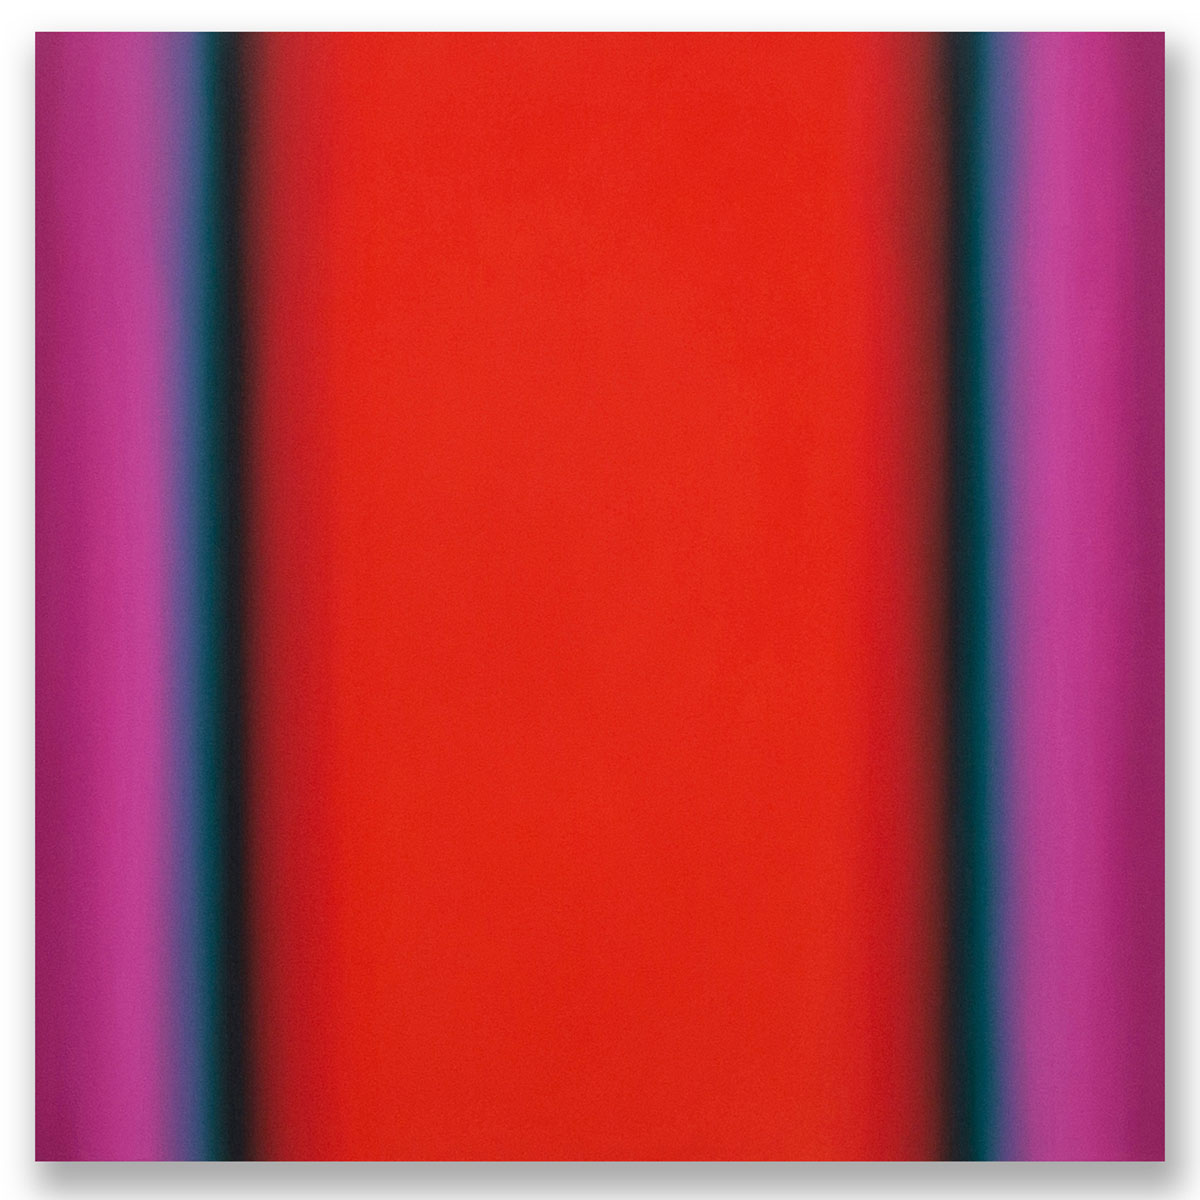 Matter of Light 11-S4848, (Red Green), Matter of Light Series, 2016, oil on canvas on custom beveled stretcher, 48 x 48 x 3 in. (122 x 122 x 7 cm.)